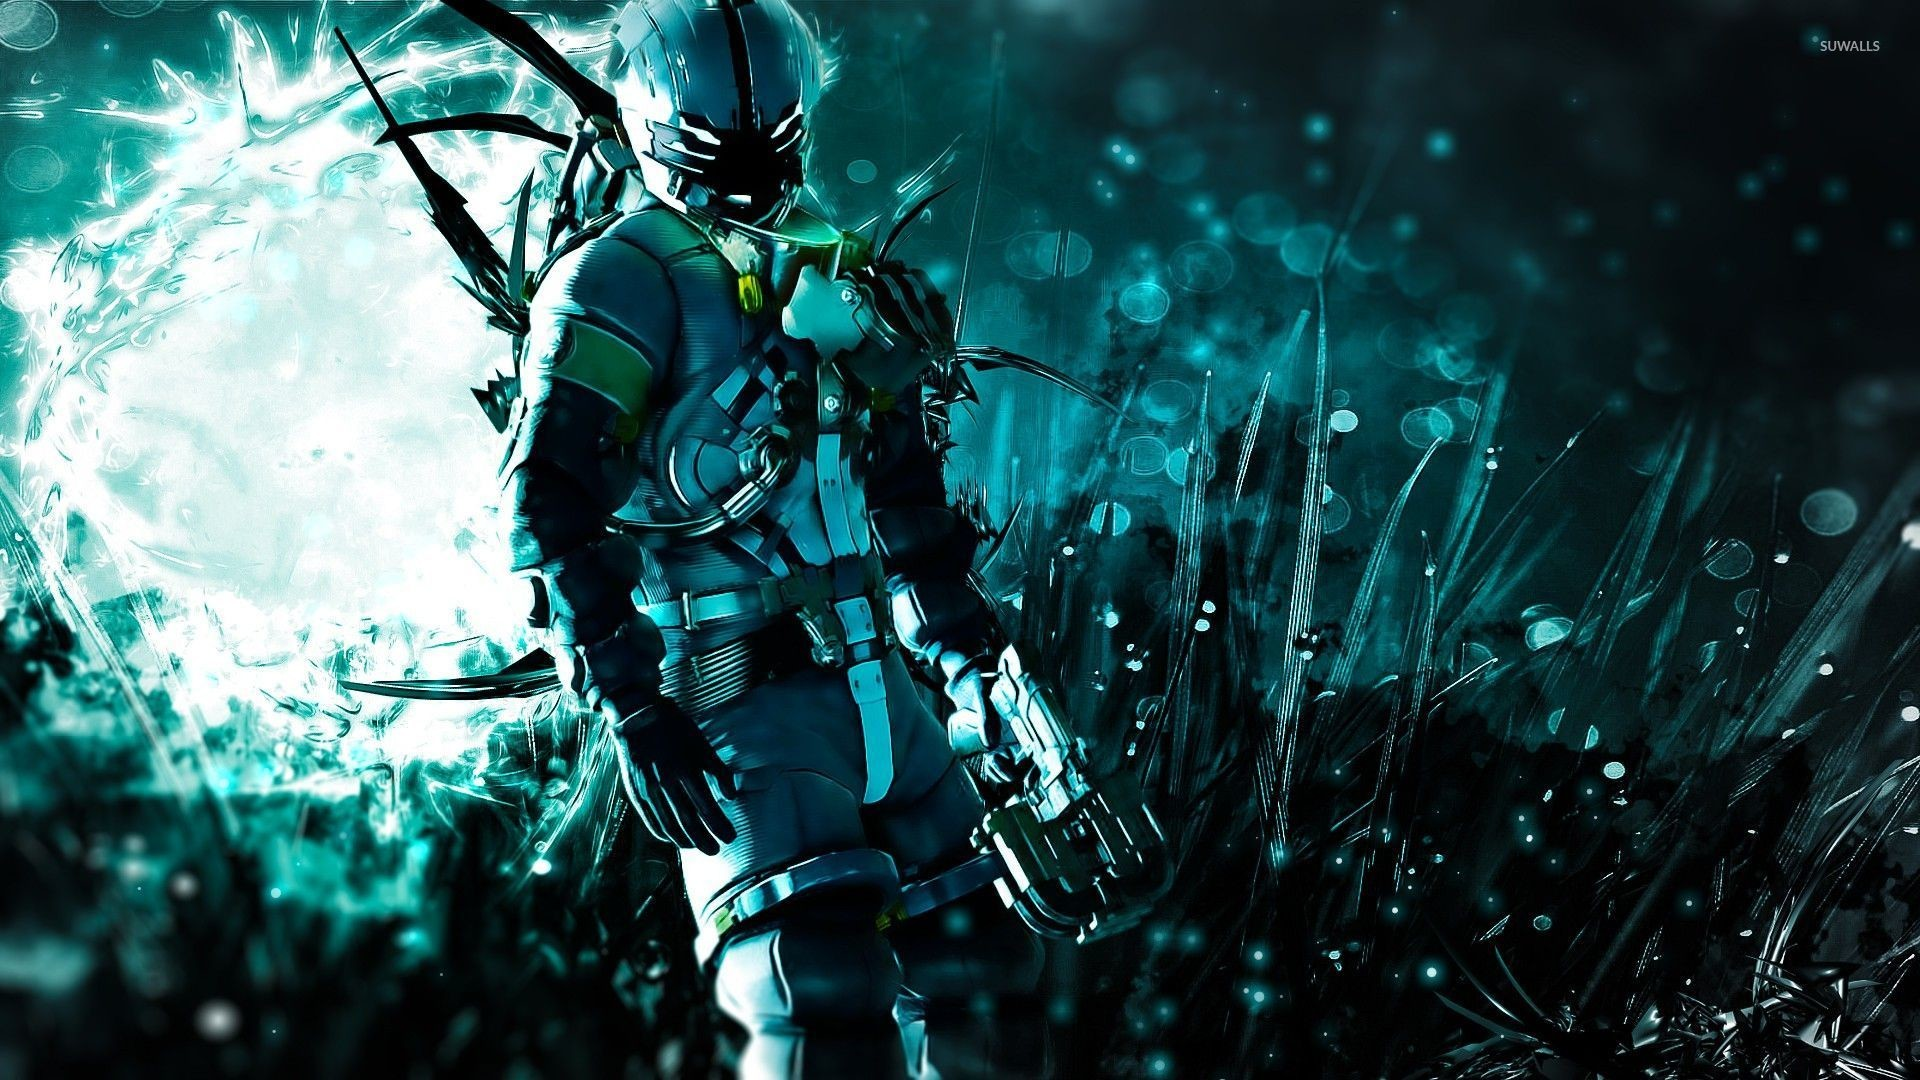 1920x1080 Widescreen Dead Space Category Wallpaper Wp20011330